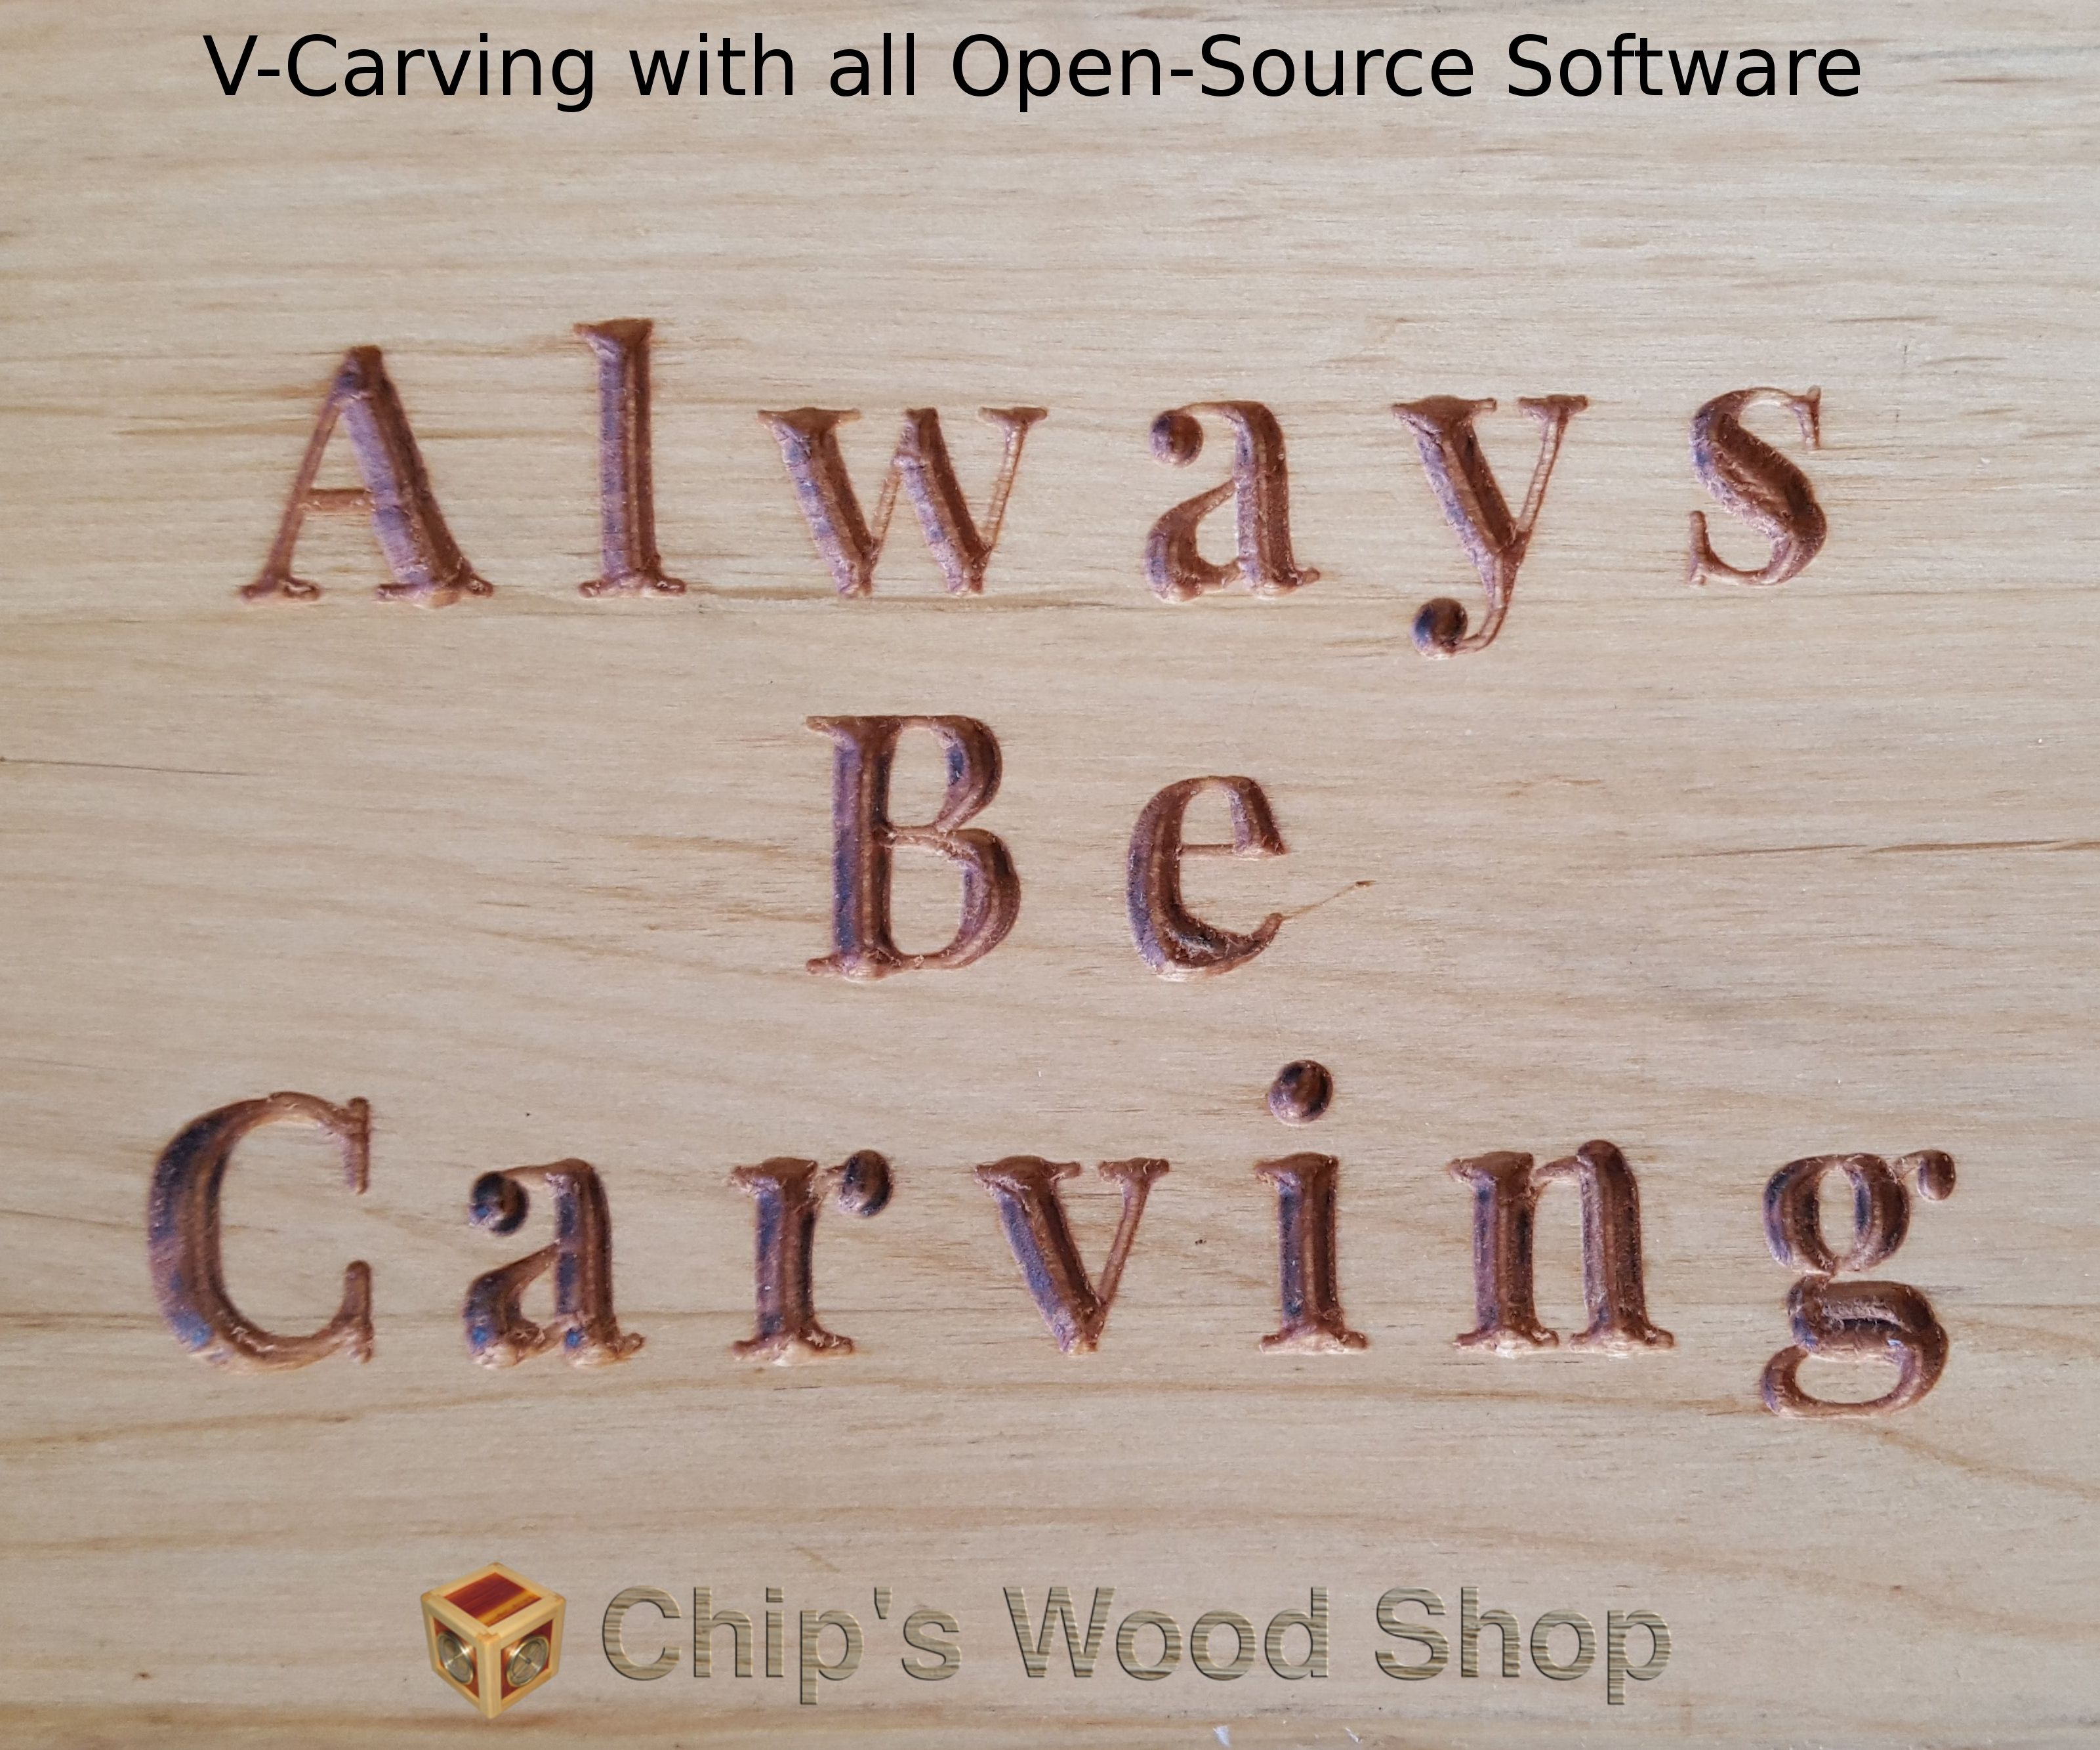 CNC Router V-Carving With All Open Source Software: 12 Steps